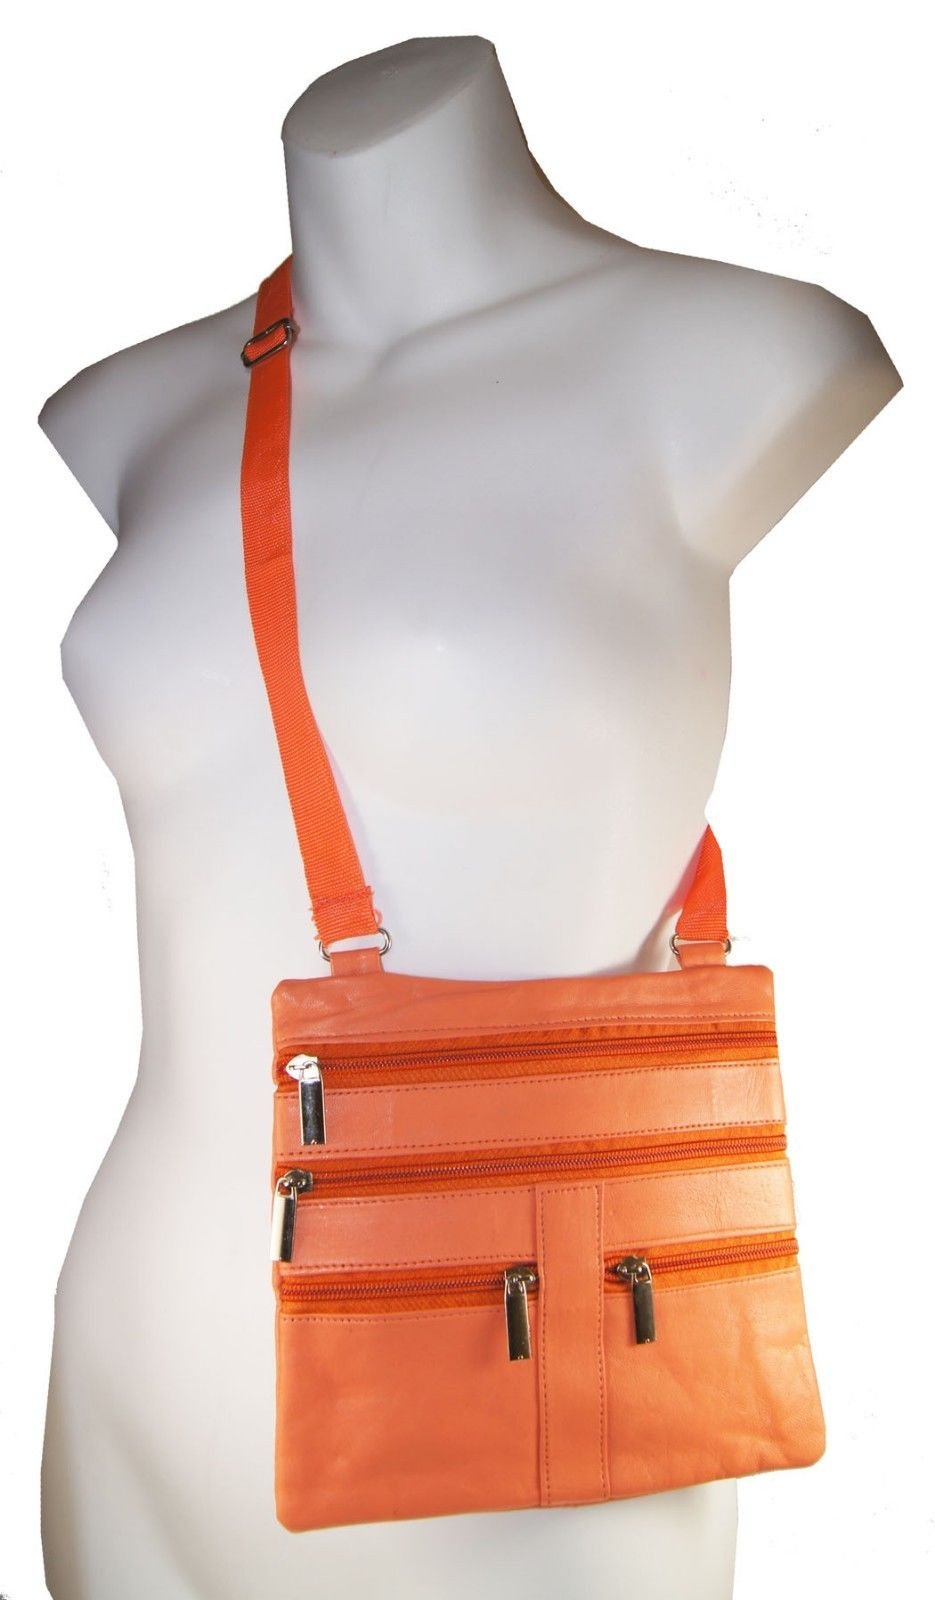 Orange Ladies Genuine Leather Cross Body Bag Satchel Messenger Bag 48'' Strap by Wallet (Image #1)